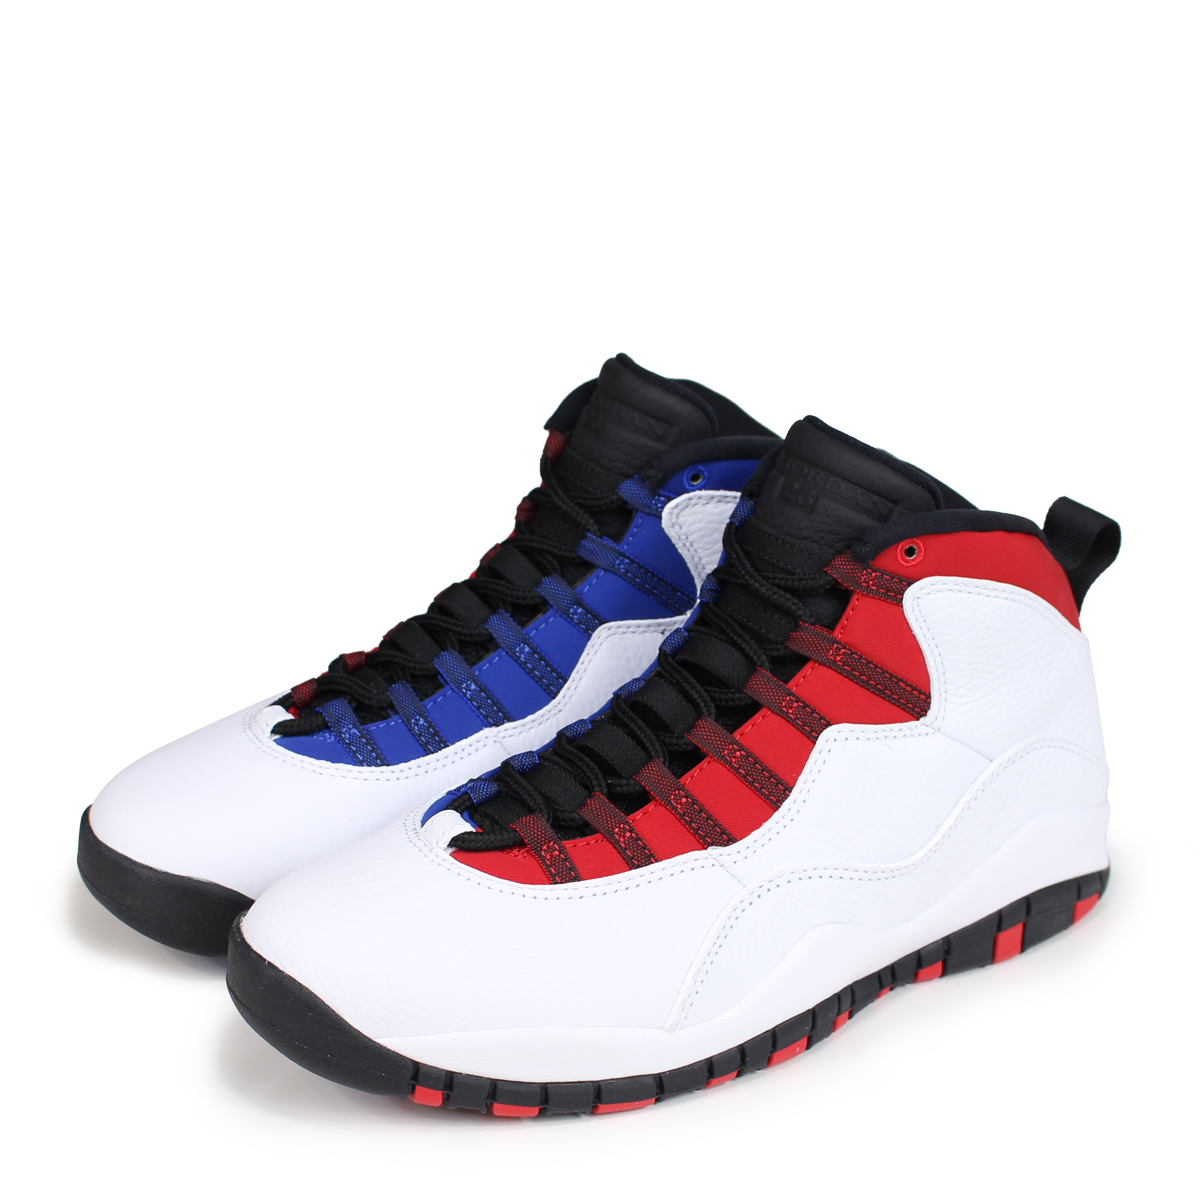 394a4037d2 NIKE AIR JORDAN 10 RETRO RUSSELL WESTBROOK Nike Air Jordan 10 nostalgic  sneakers men 310,805-160 white [load planned Shinnyu load in reservation ...